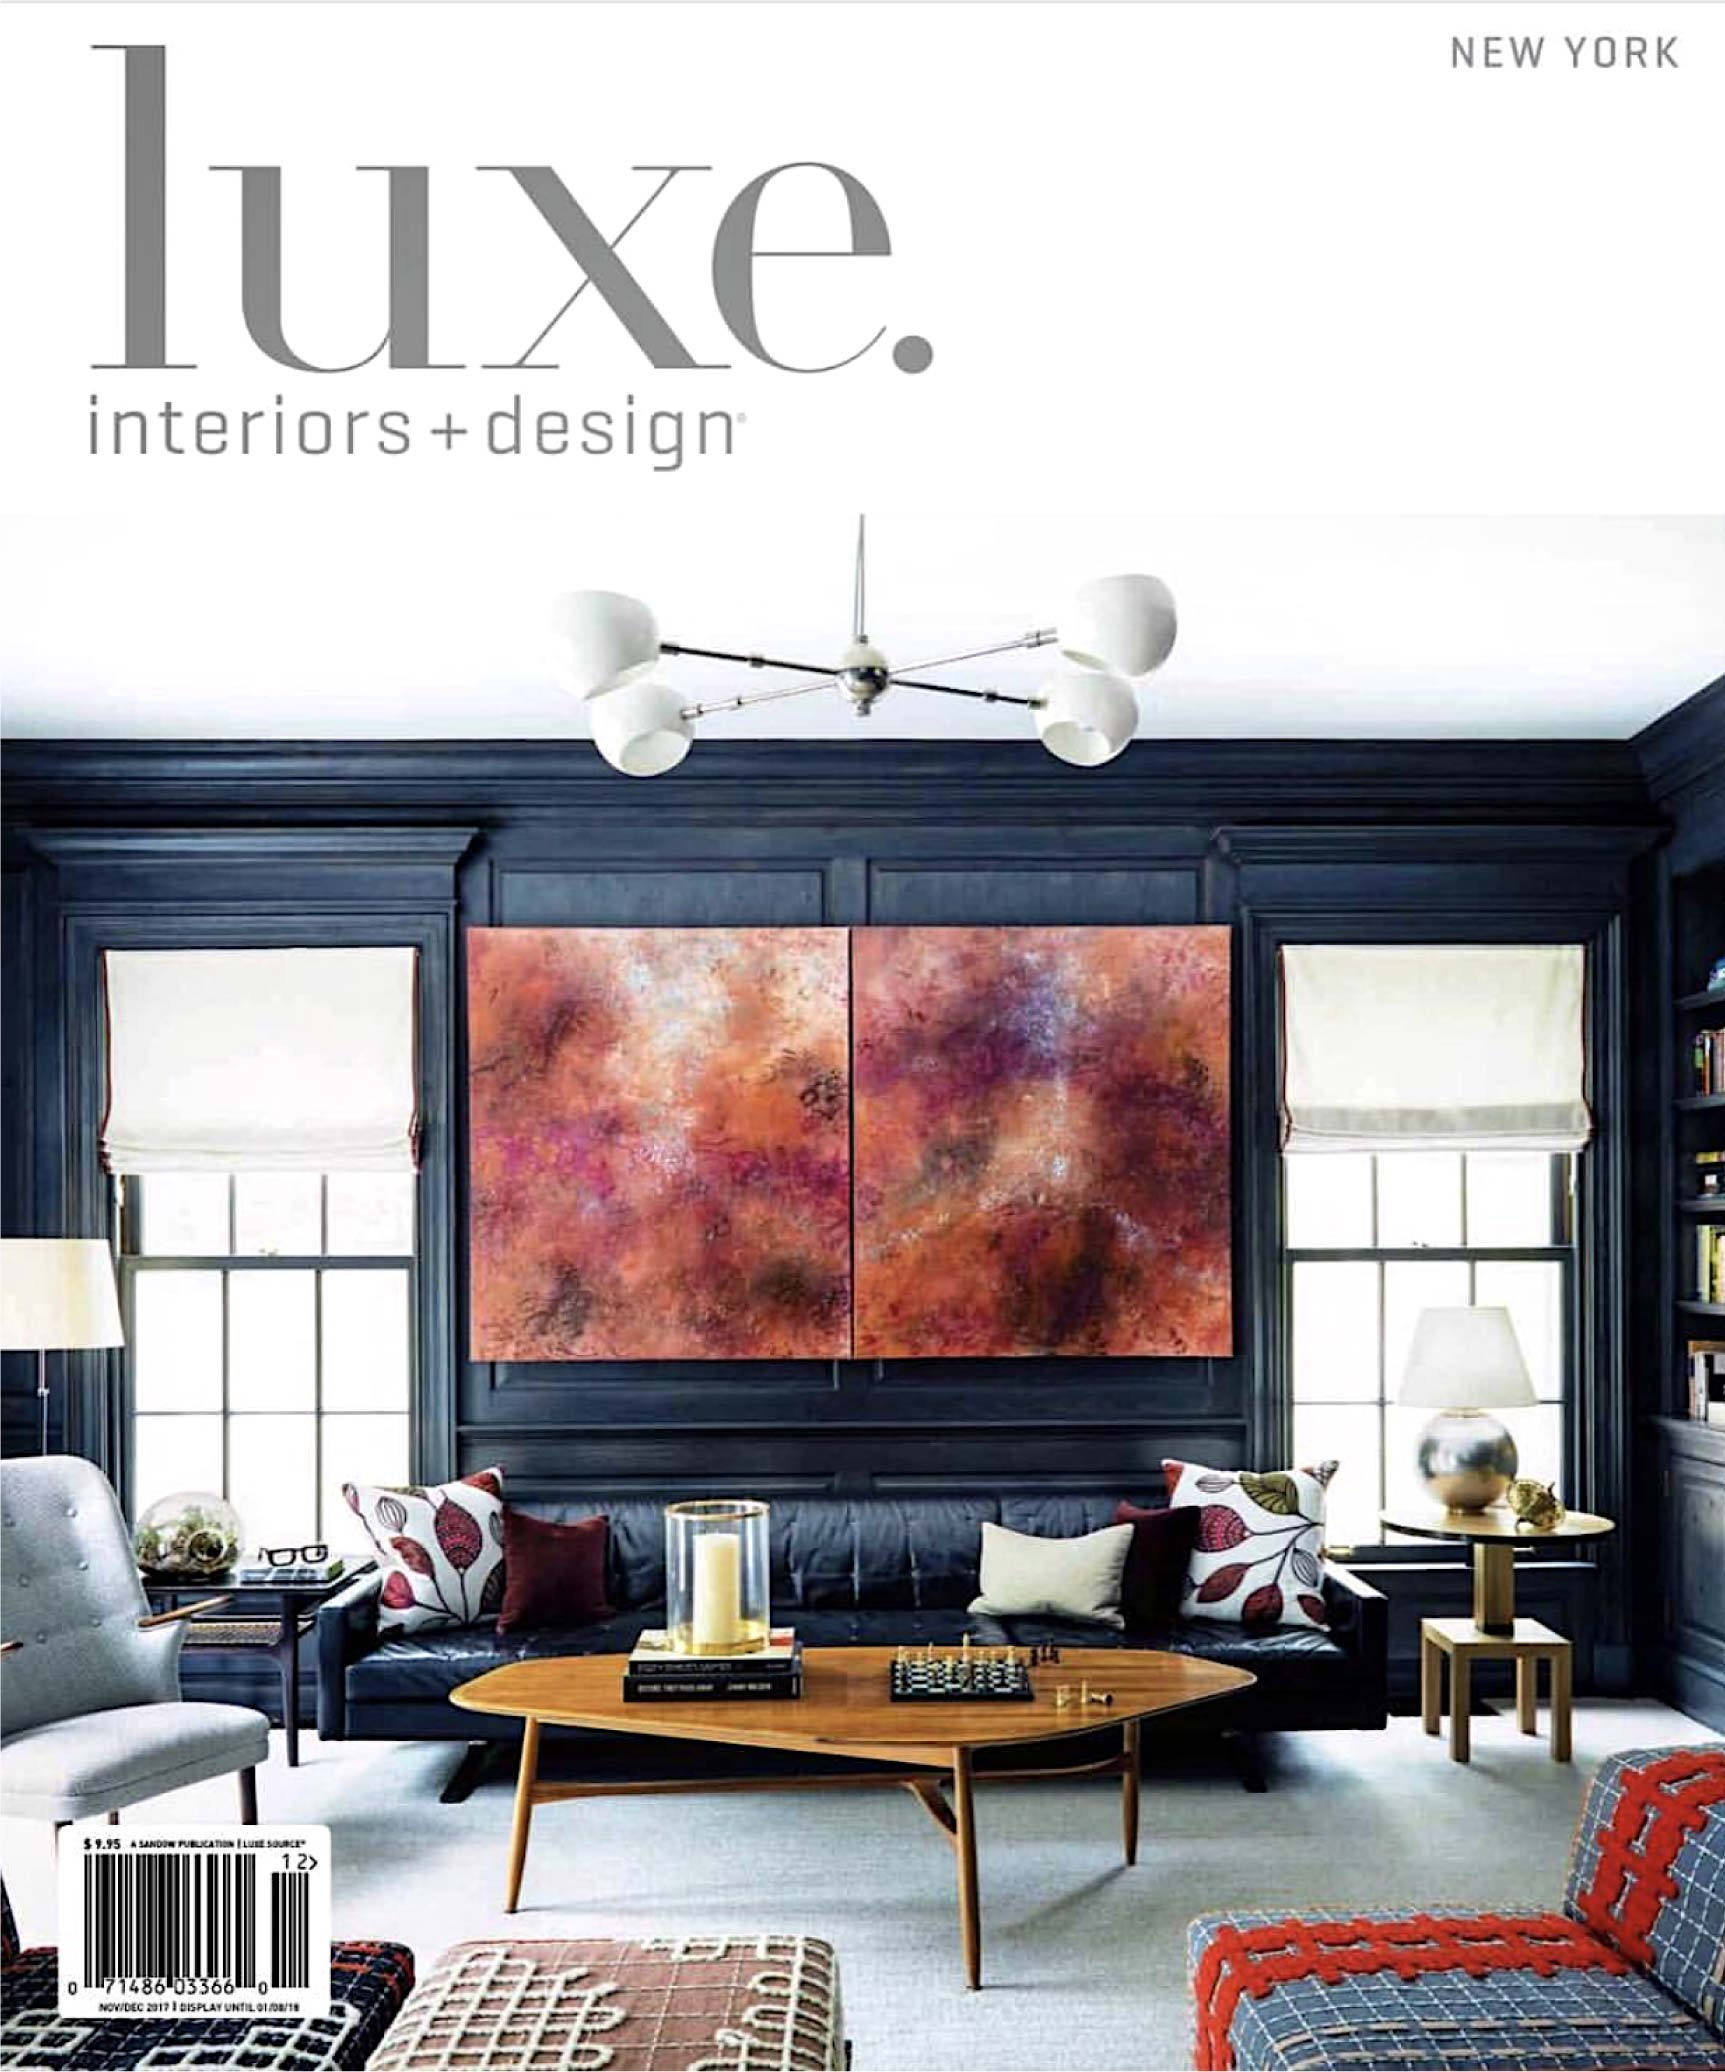 Luxe Interiors + Design New York Nov/Dec 2017